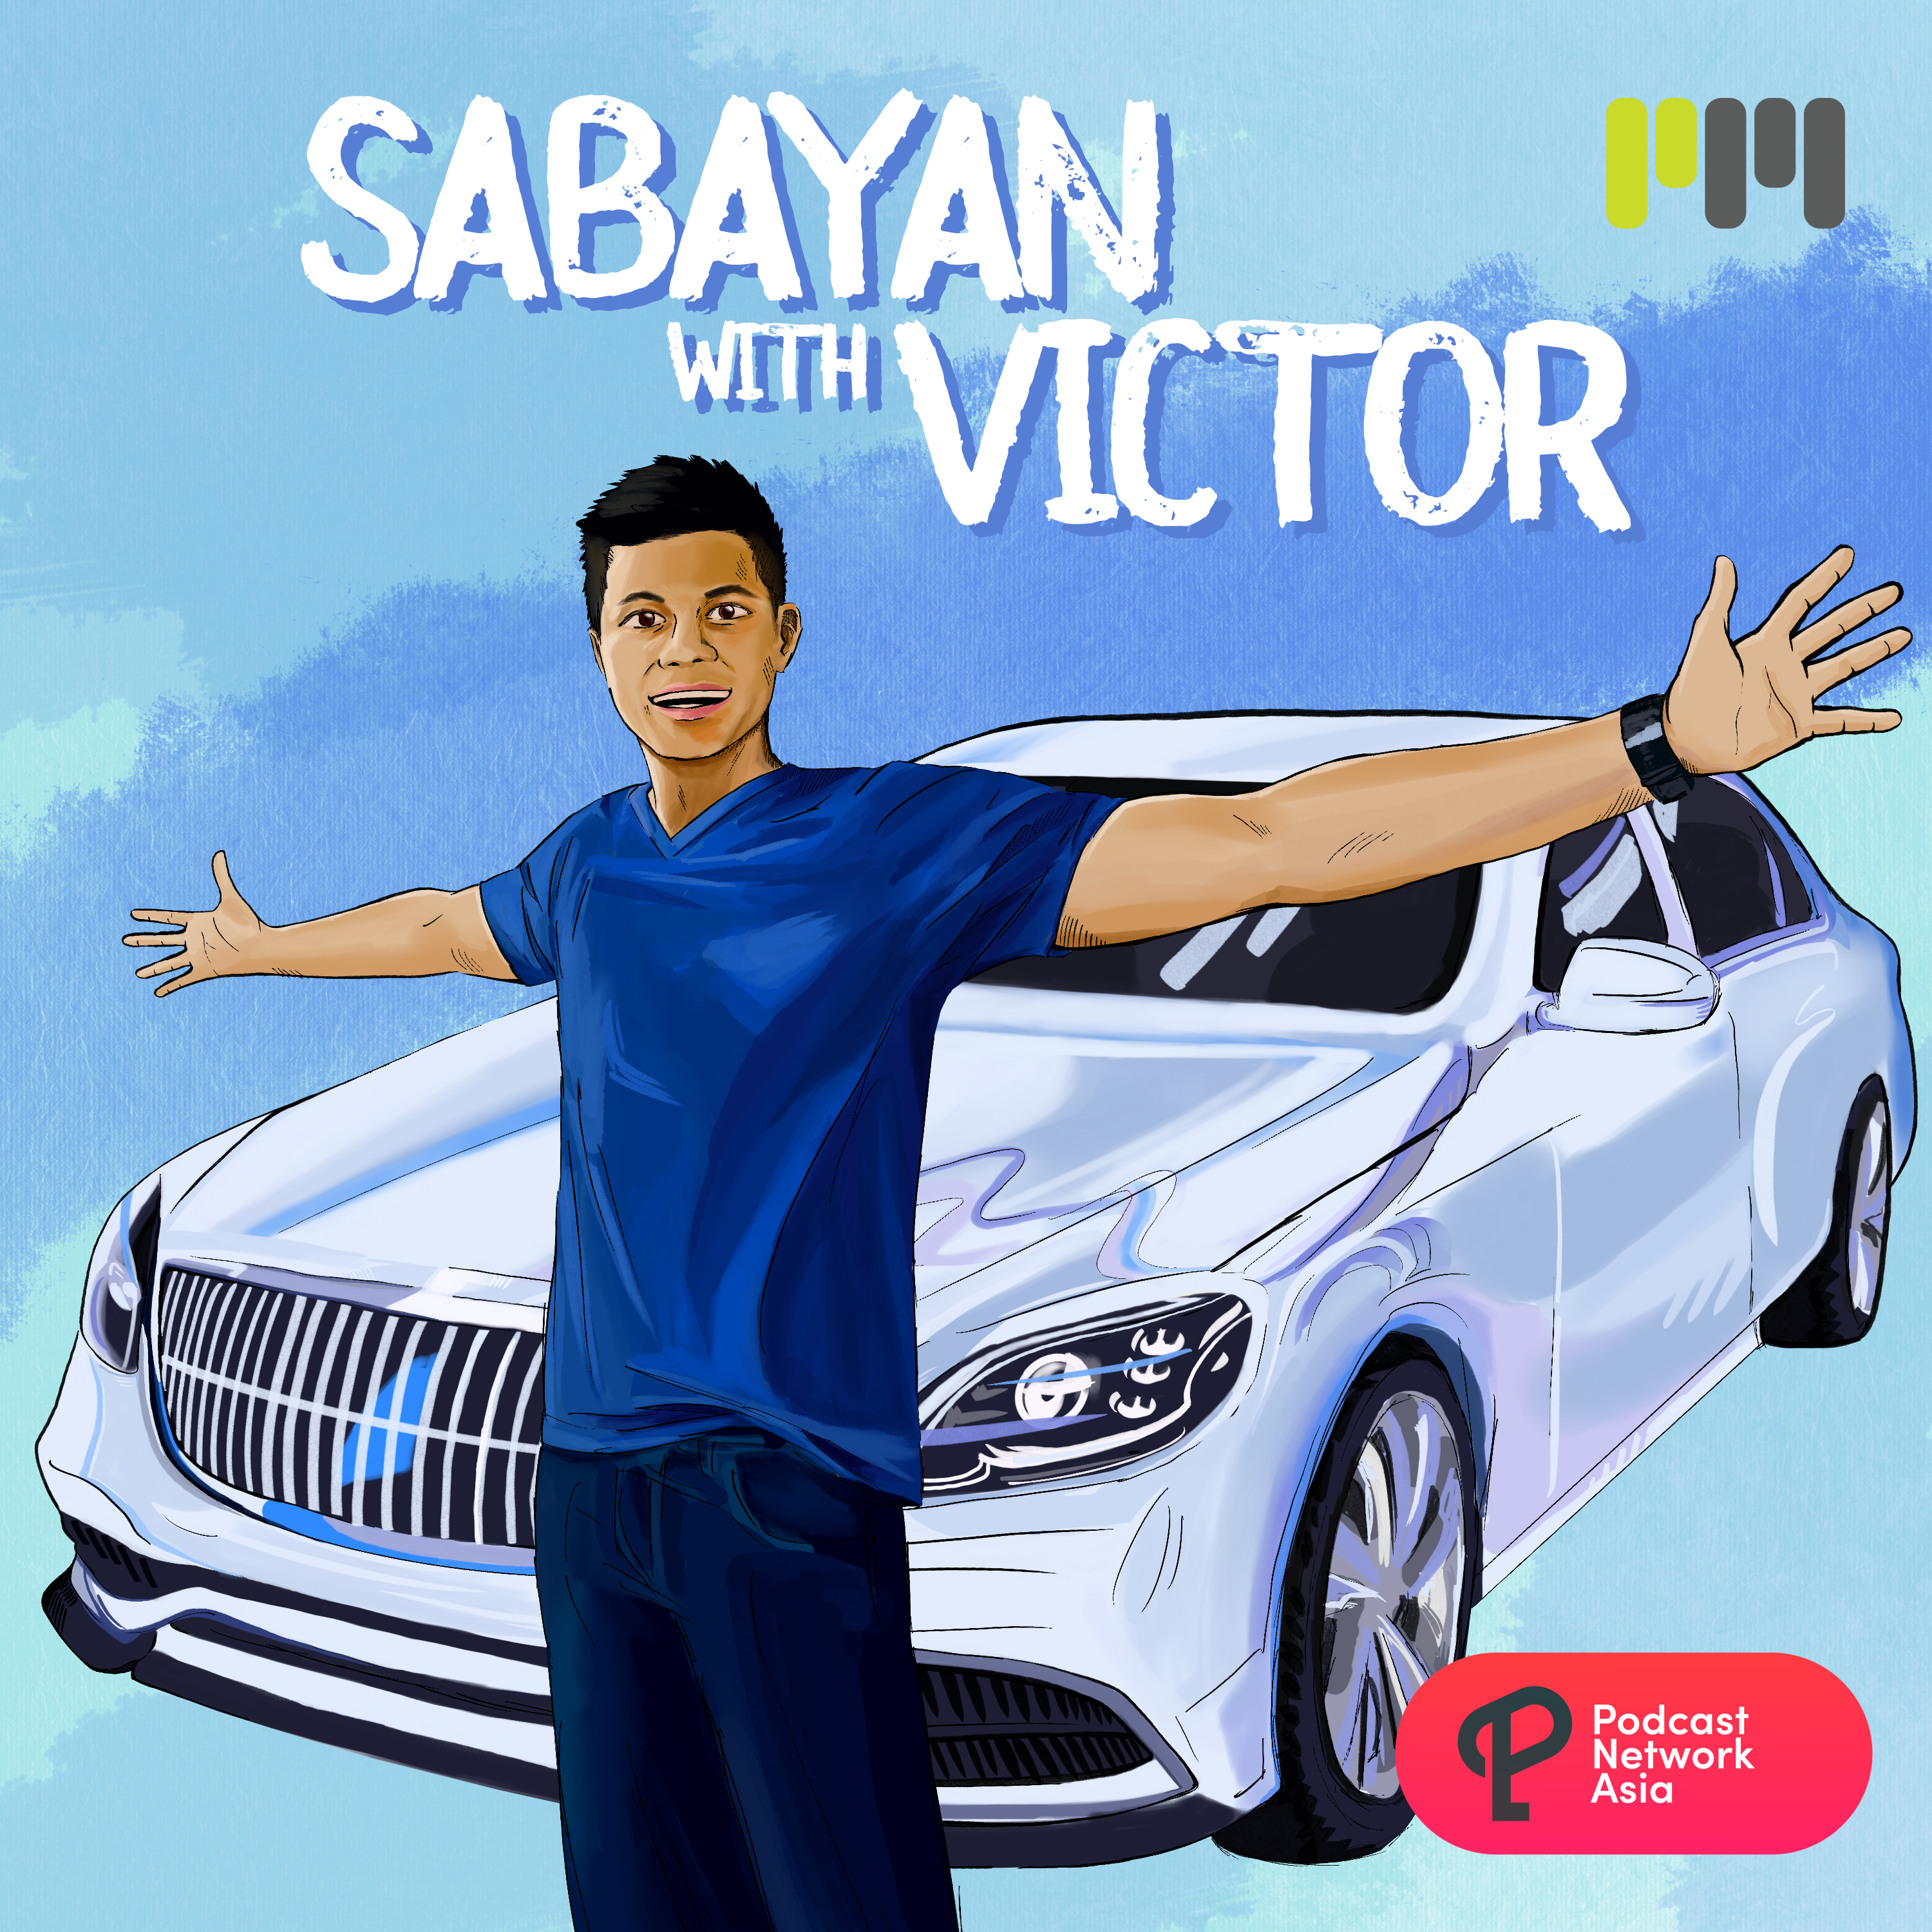 Sabayan with Victor